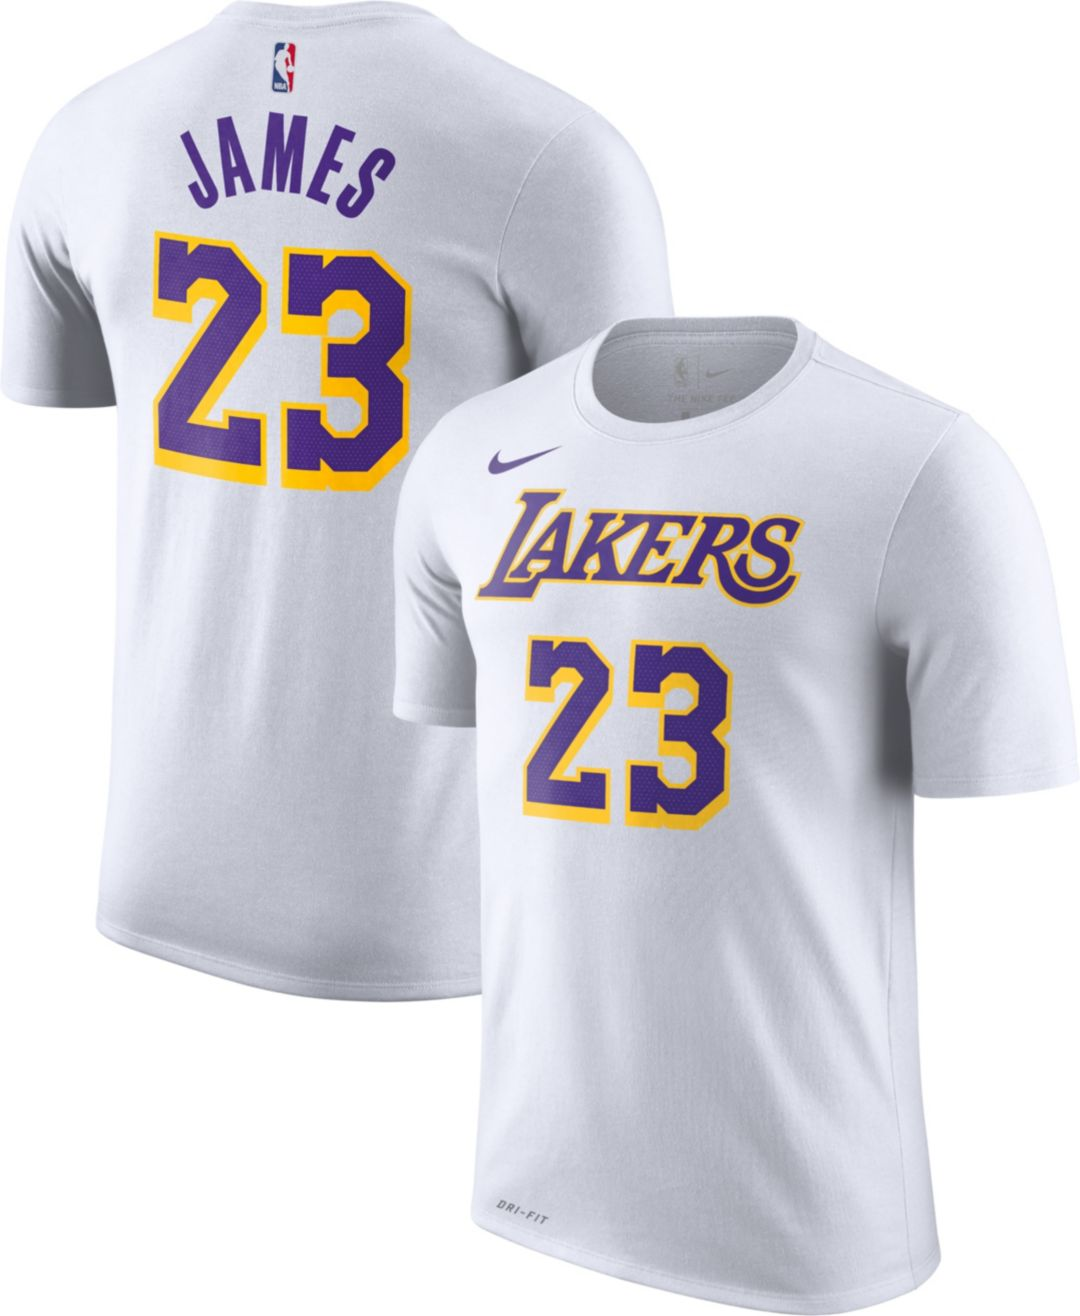 official photos 05974 c79a6 Nike Men's Los Angeles Lakers LeBron James Dri-FIT White T-Shirt